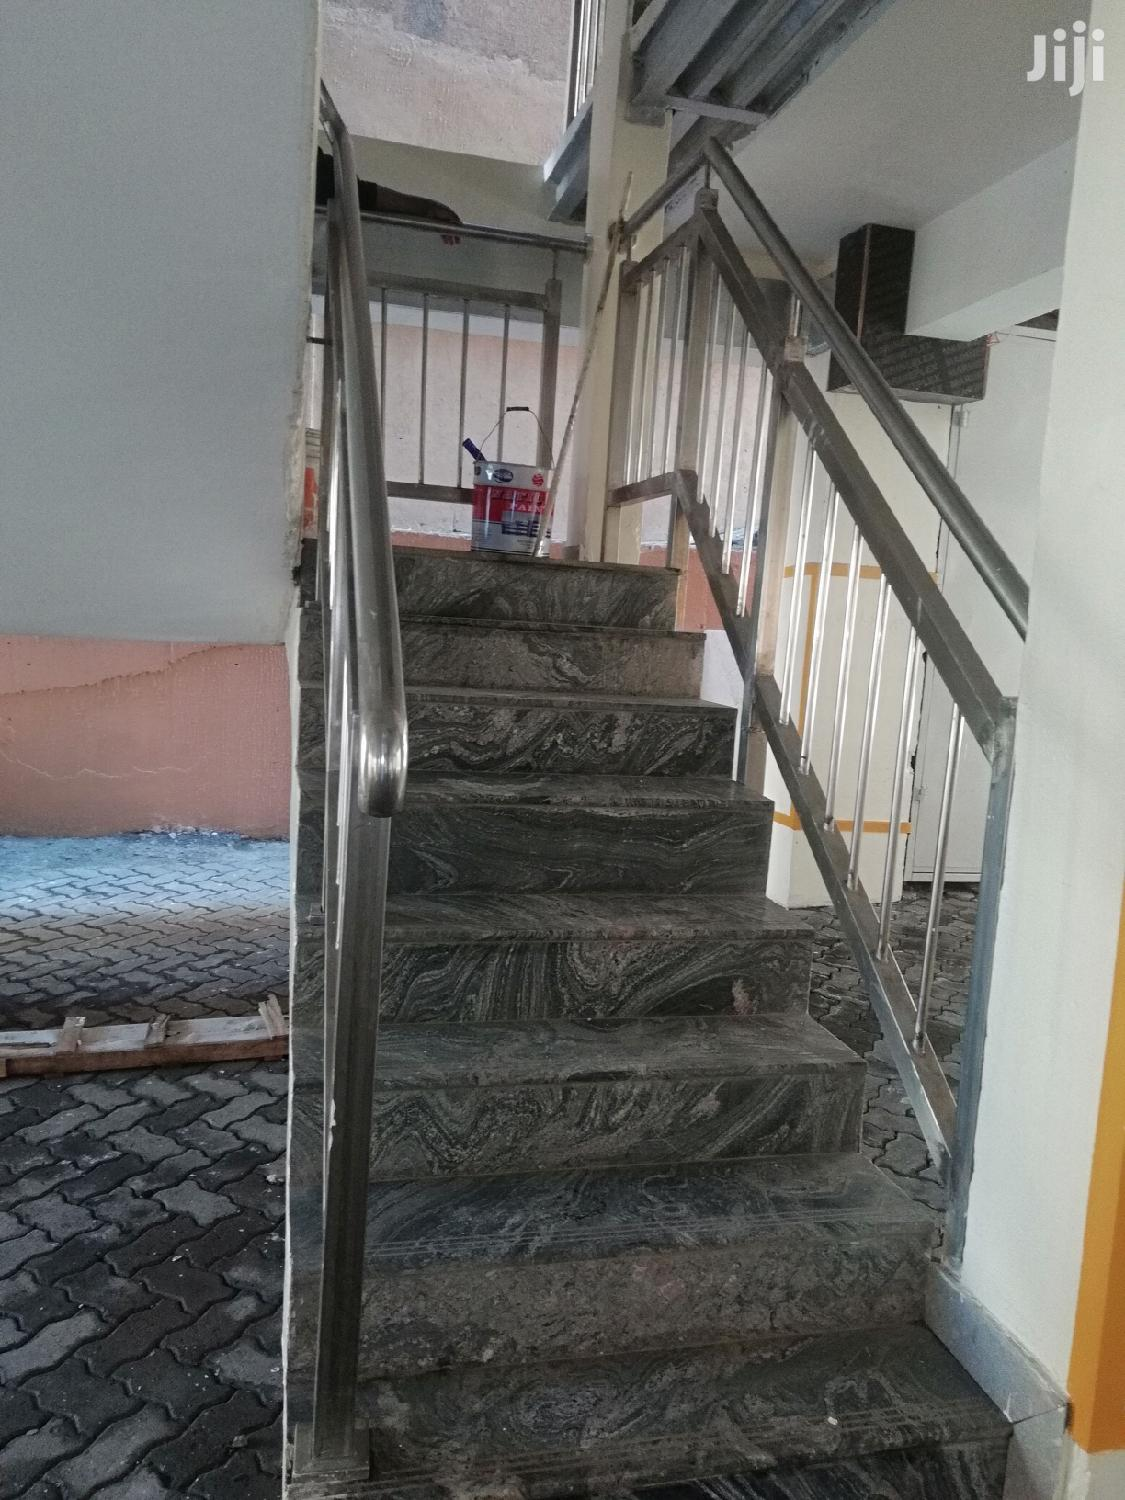 Elegant 1/2brs Apartment With Genetator,Lift And Very Secure | Houses & Apartments For Rent for sale in Lavington, Nairobi, Kenya